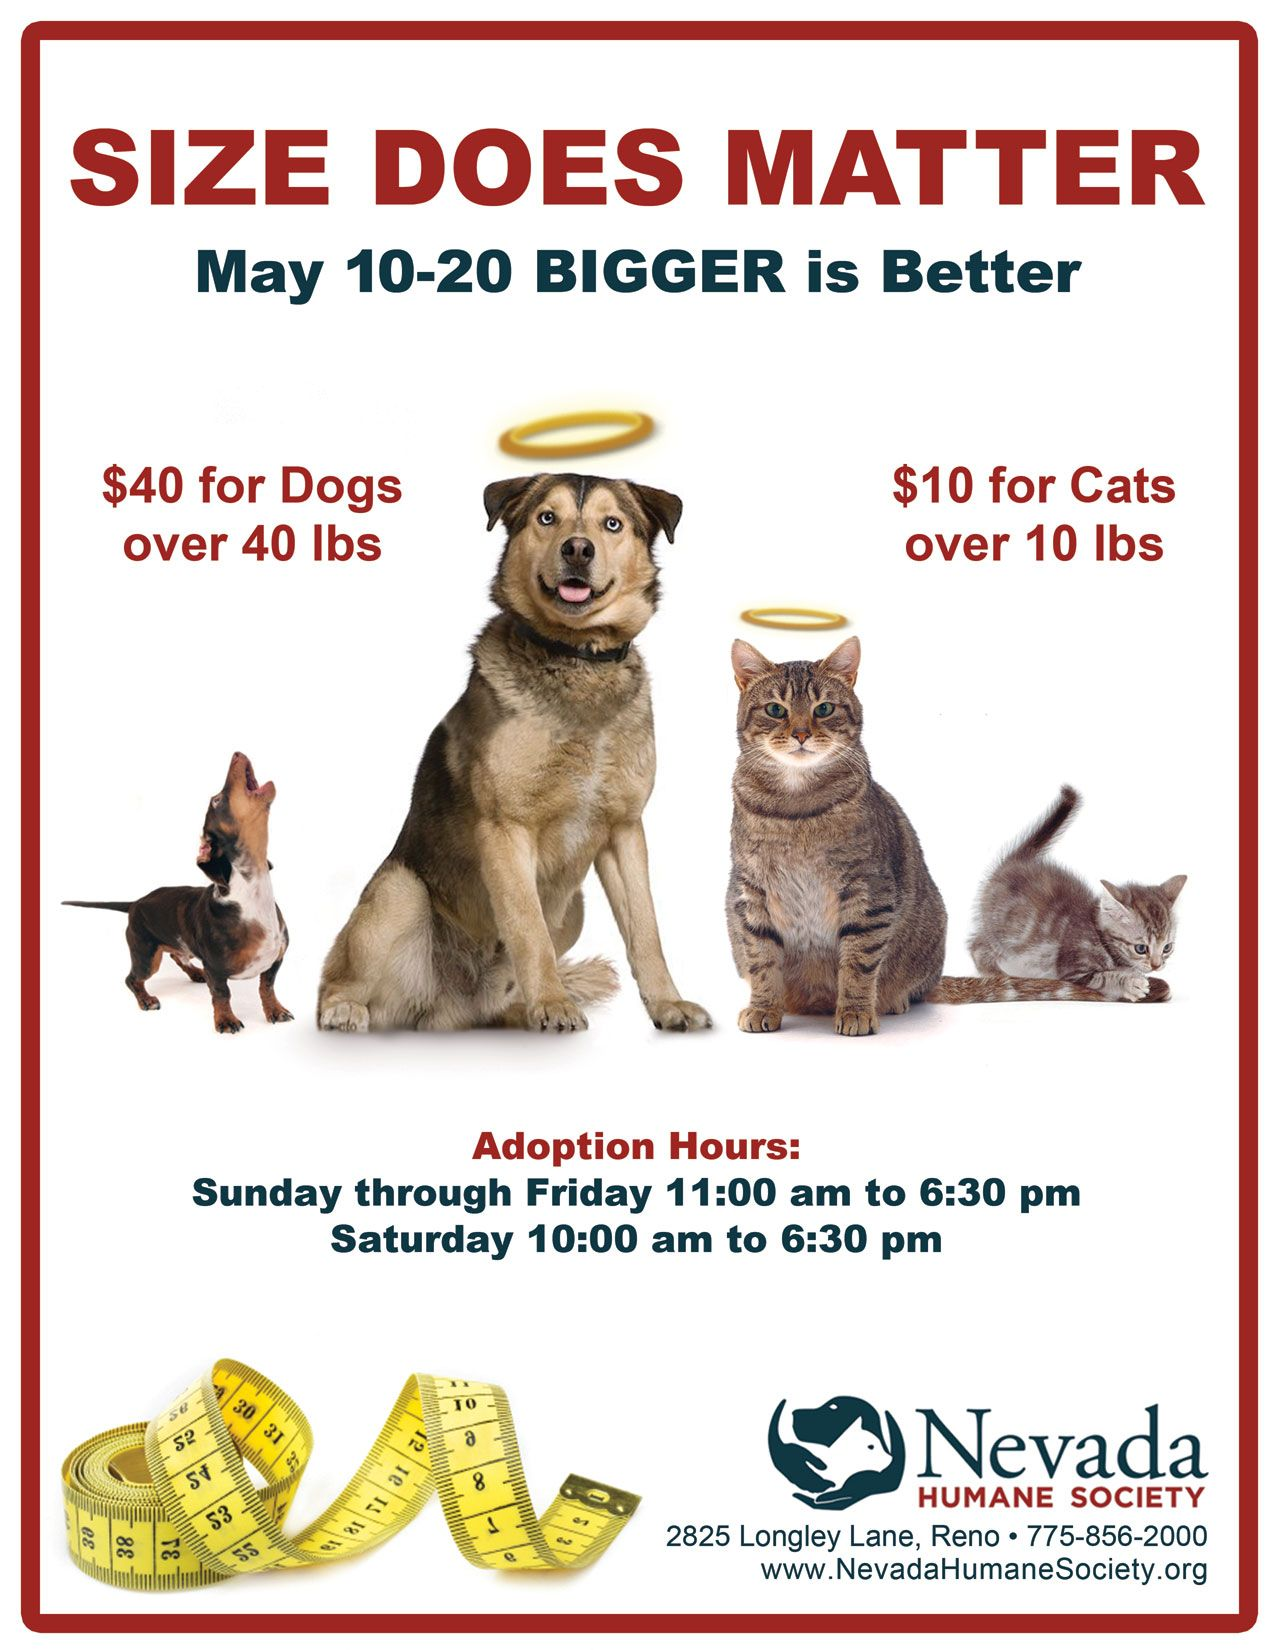 Size Does Matter But We Love All Pets Big And Small The Nhs Size Does Matter Adoption Promotion May 10 20 2012 Animal Shelter Adoption Animals